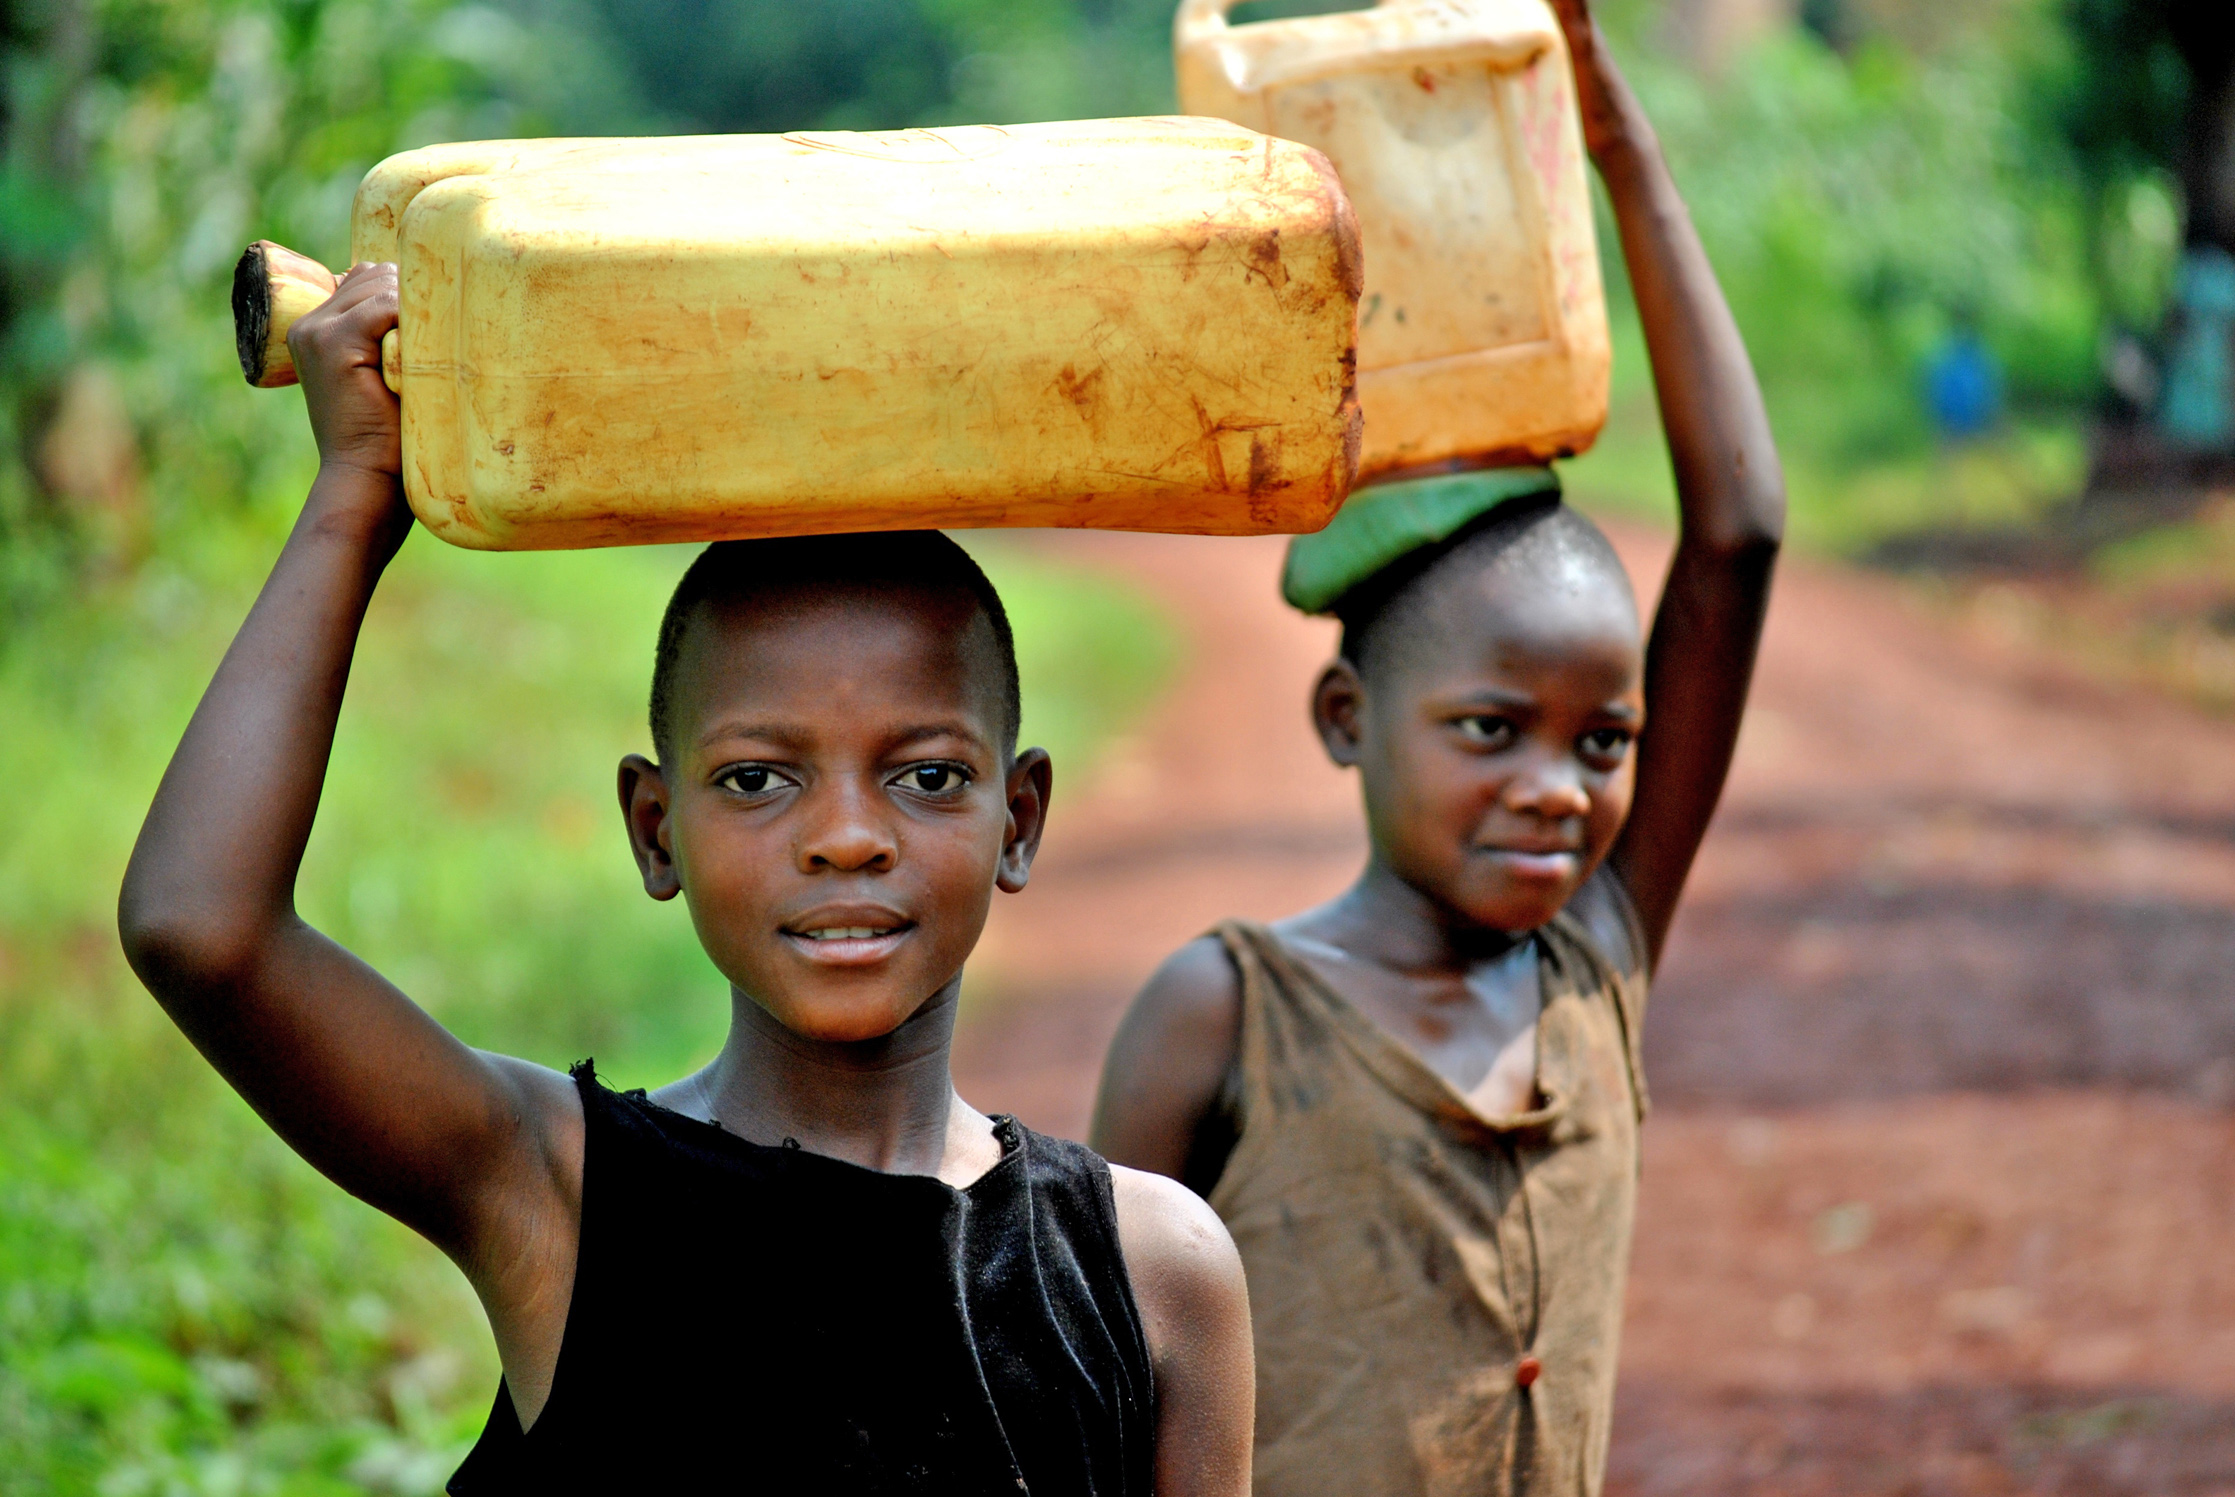 Girls from Beweda village in southwestern Uganda, where women and girls walk over 8km daily to fetch water (Dec 2011)